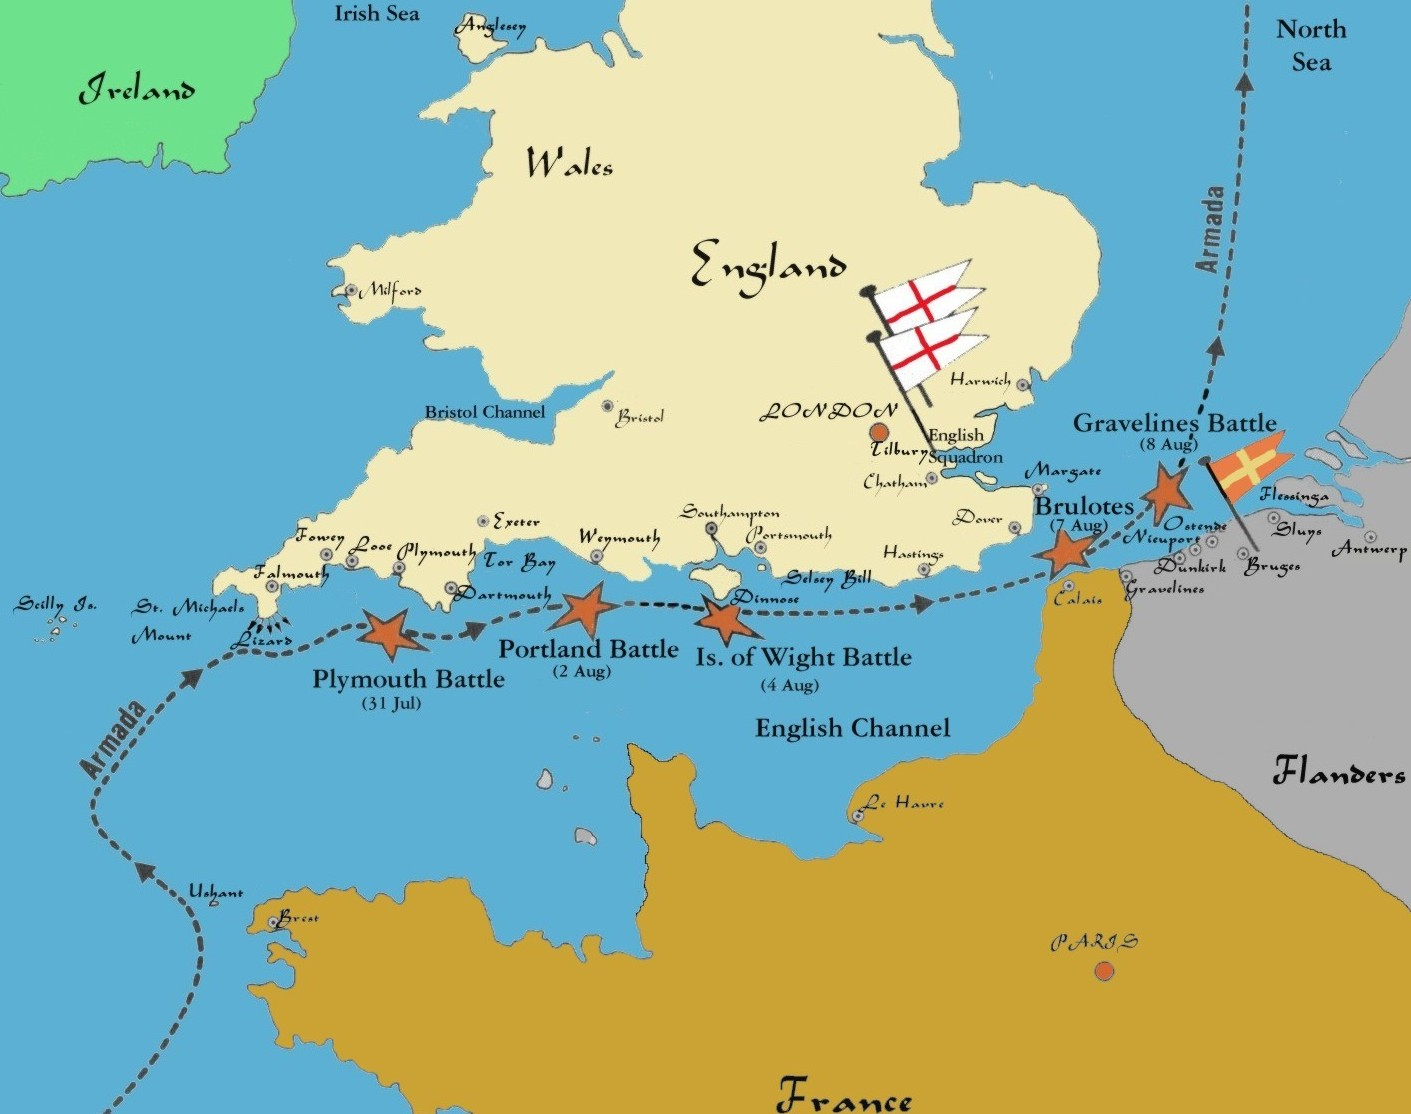 Spanish armada map of 1588 battle locations spanish armada map of 1588 battle locations world history famous historical events geography gumiabroncs Gallery